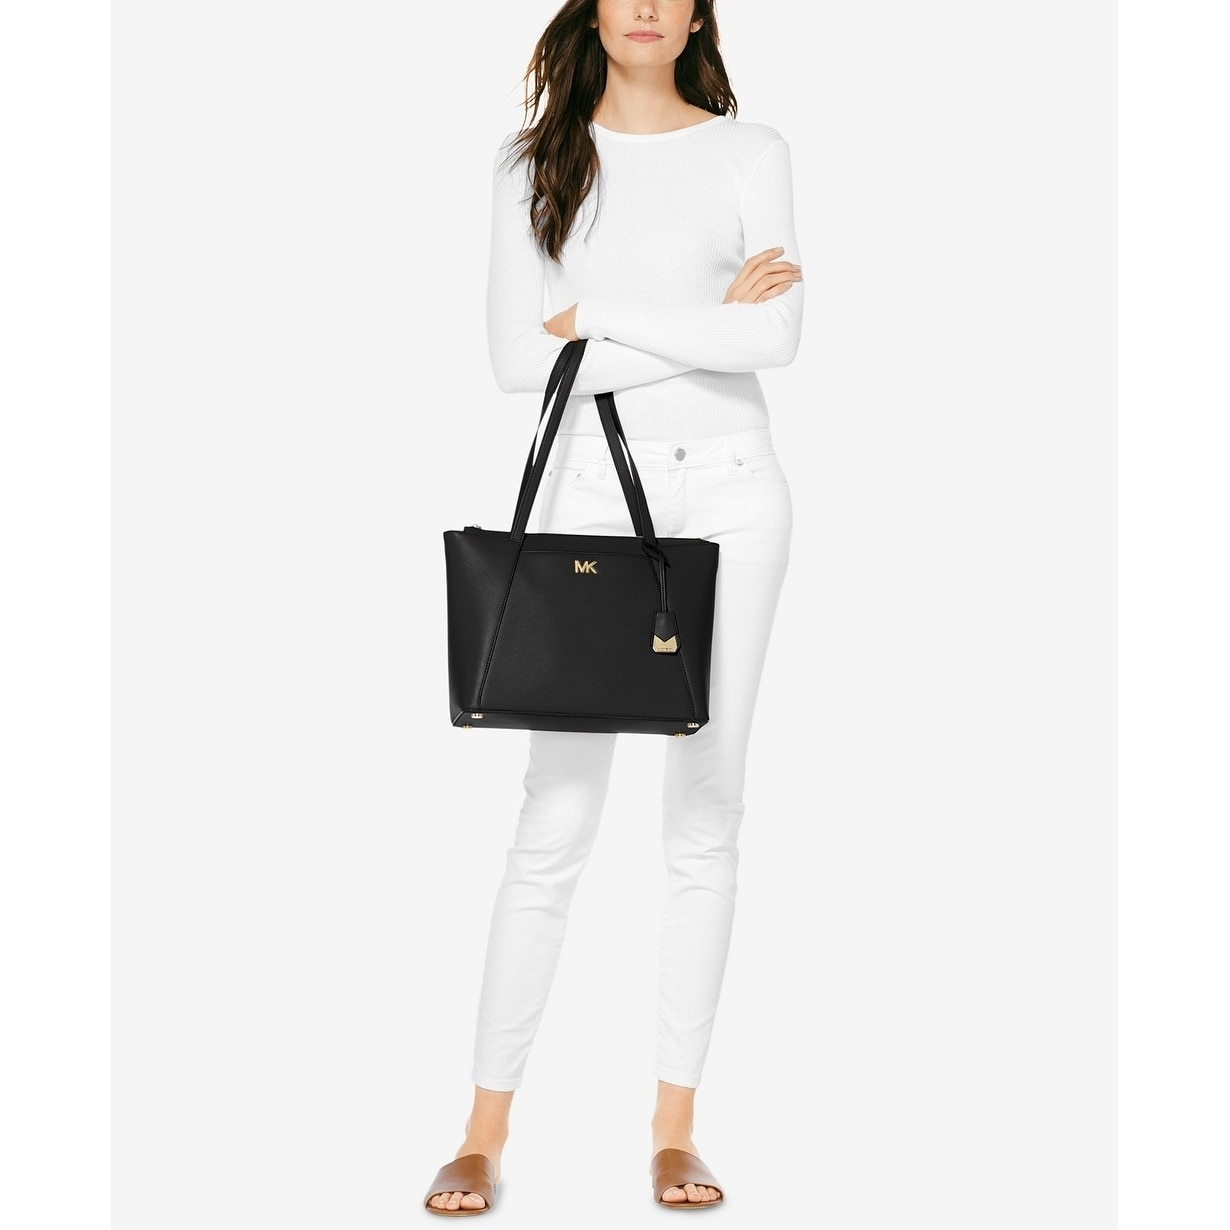 1f1c8a297867f6 Shop MICHAEL Michael Kors Maddie Medium East West Tote Black - Free  Shipping Today - Overstock - 22612719